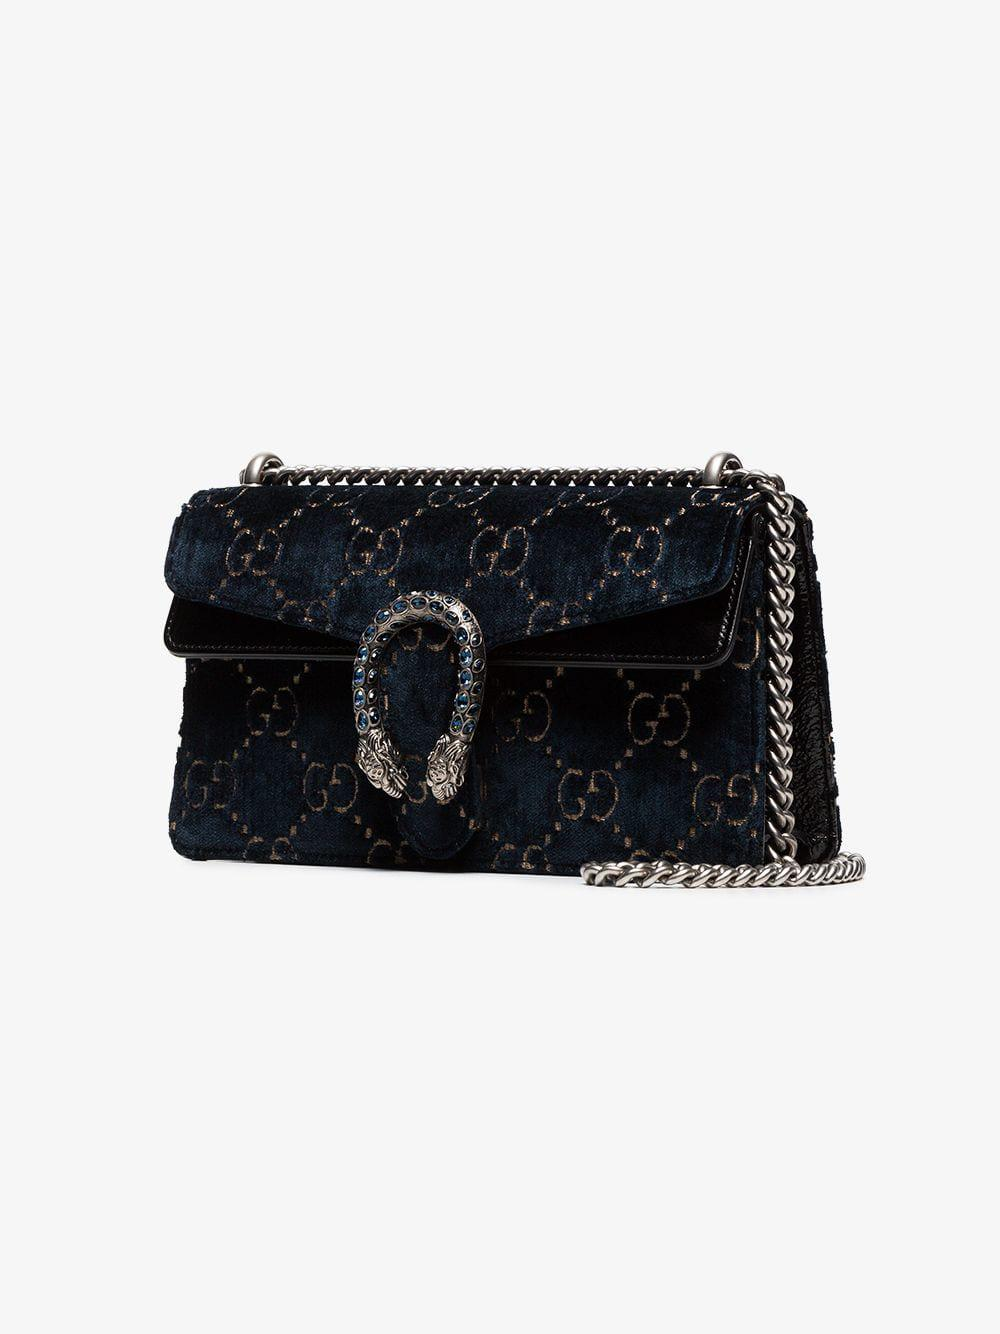 4a365453625b43 Gucci Dionysus Leather-trimmed Embossed Velvet Bag in Blue - Lyst